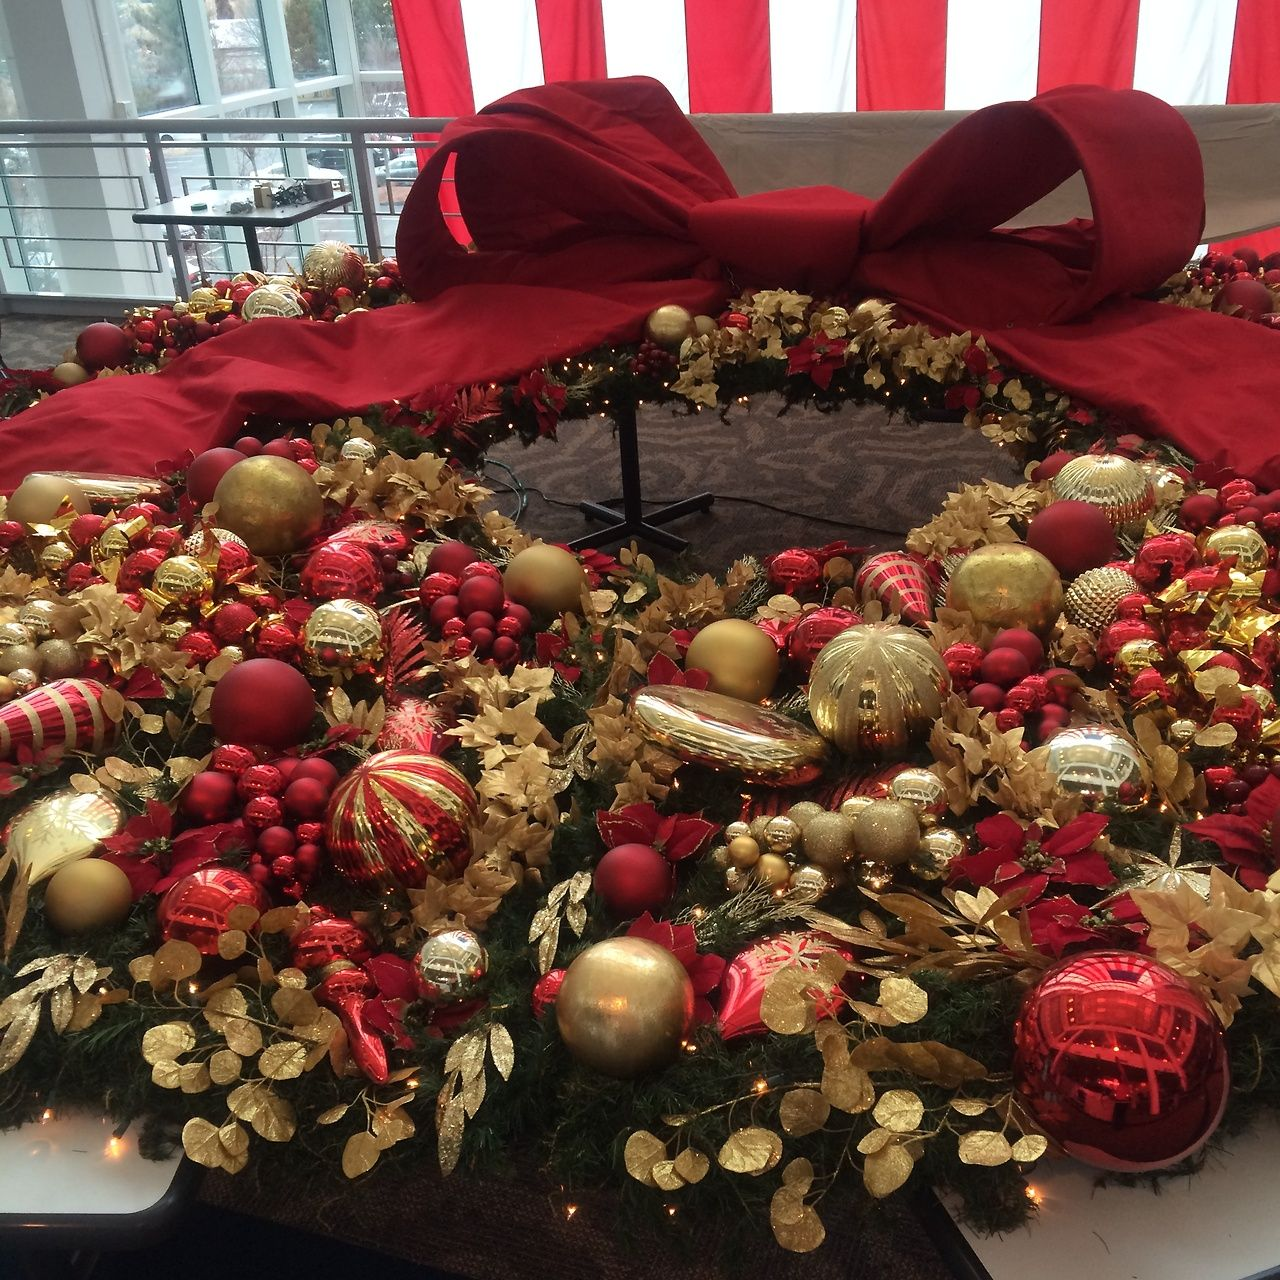 BEHIND THE SEAMS TUESDAYS We are getting ready to hang our holiday wreaths here at the home office! Check out our new tumblr page»